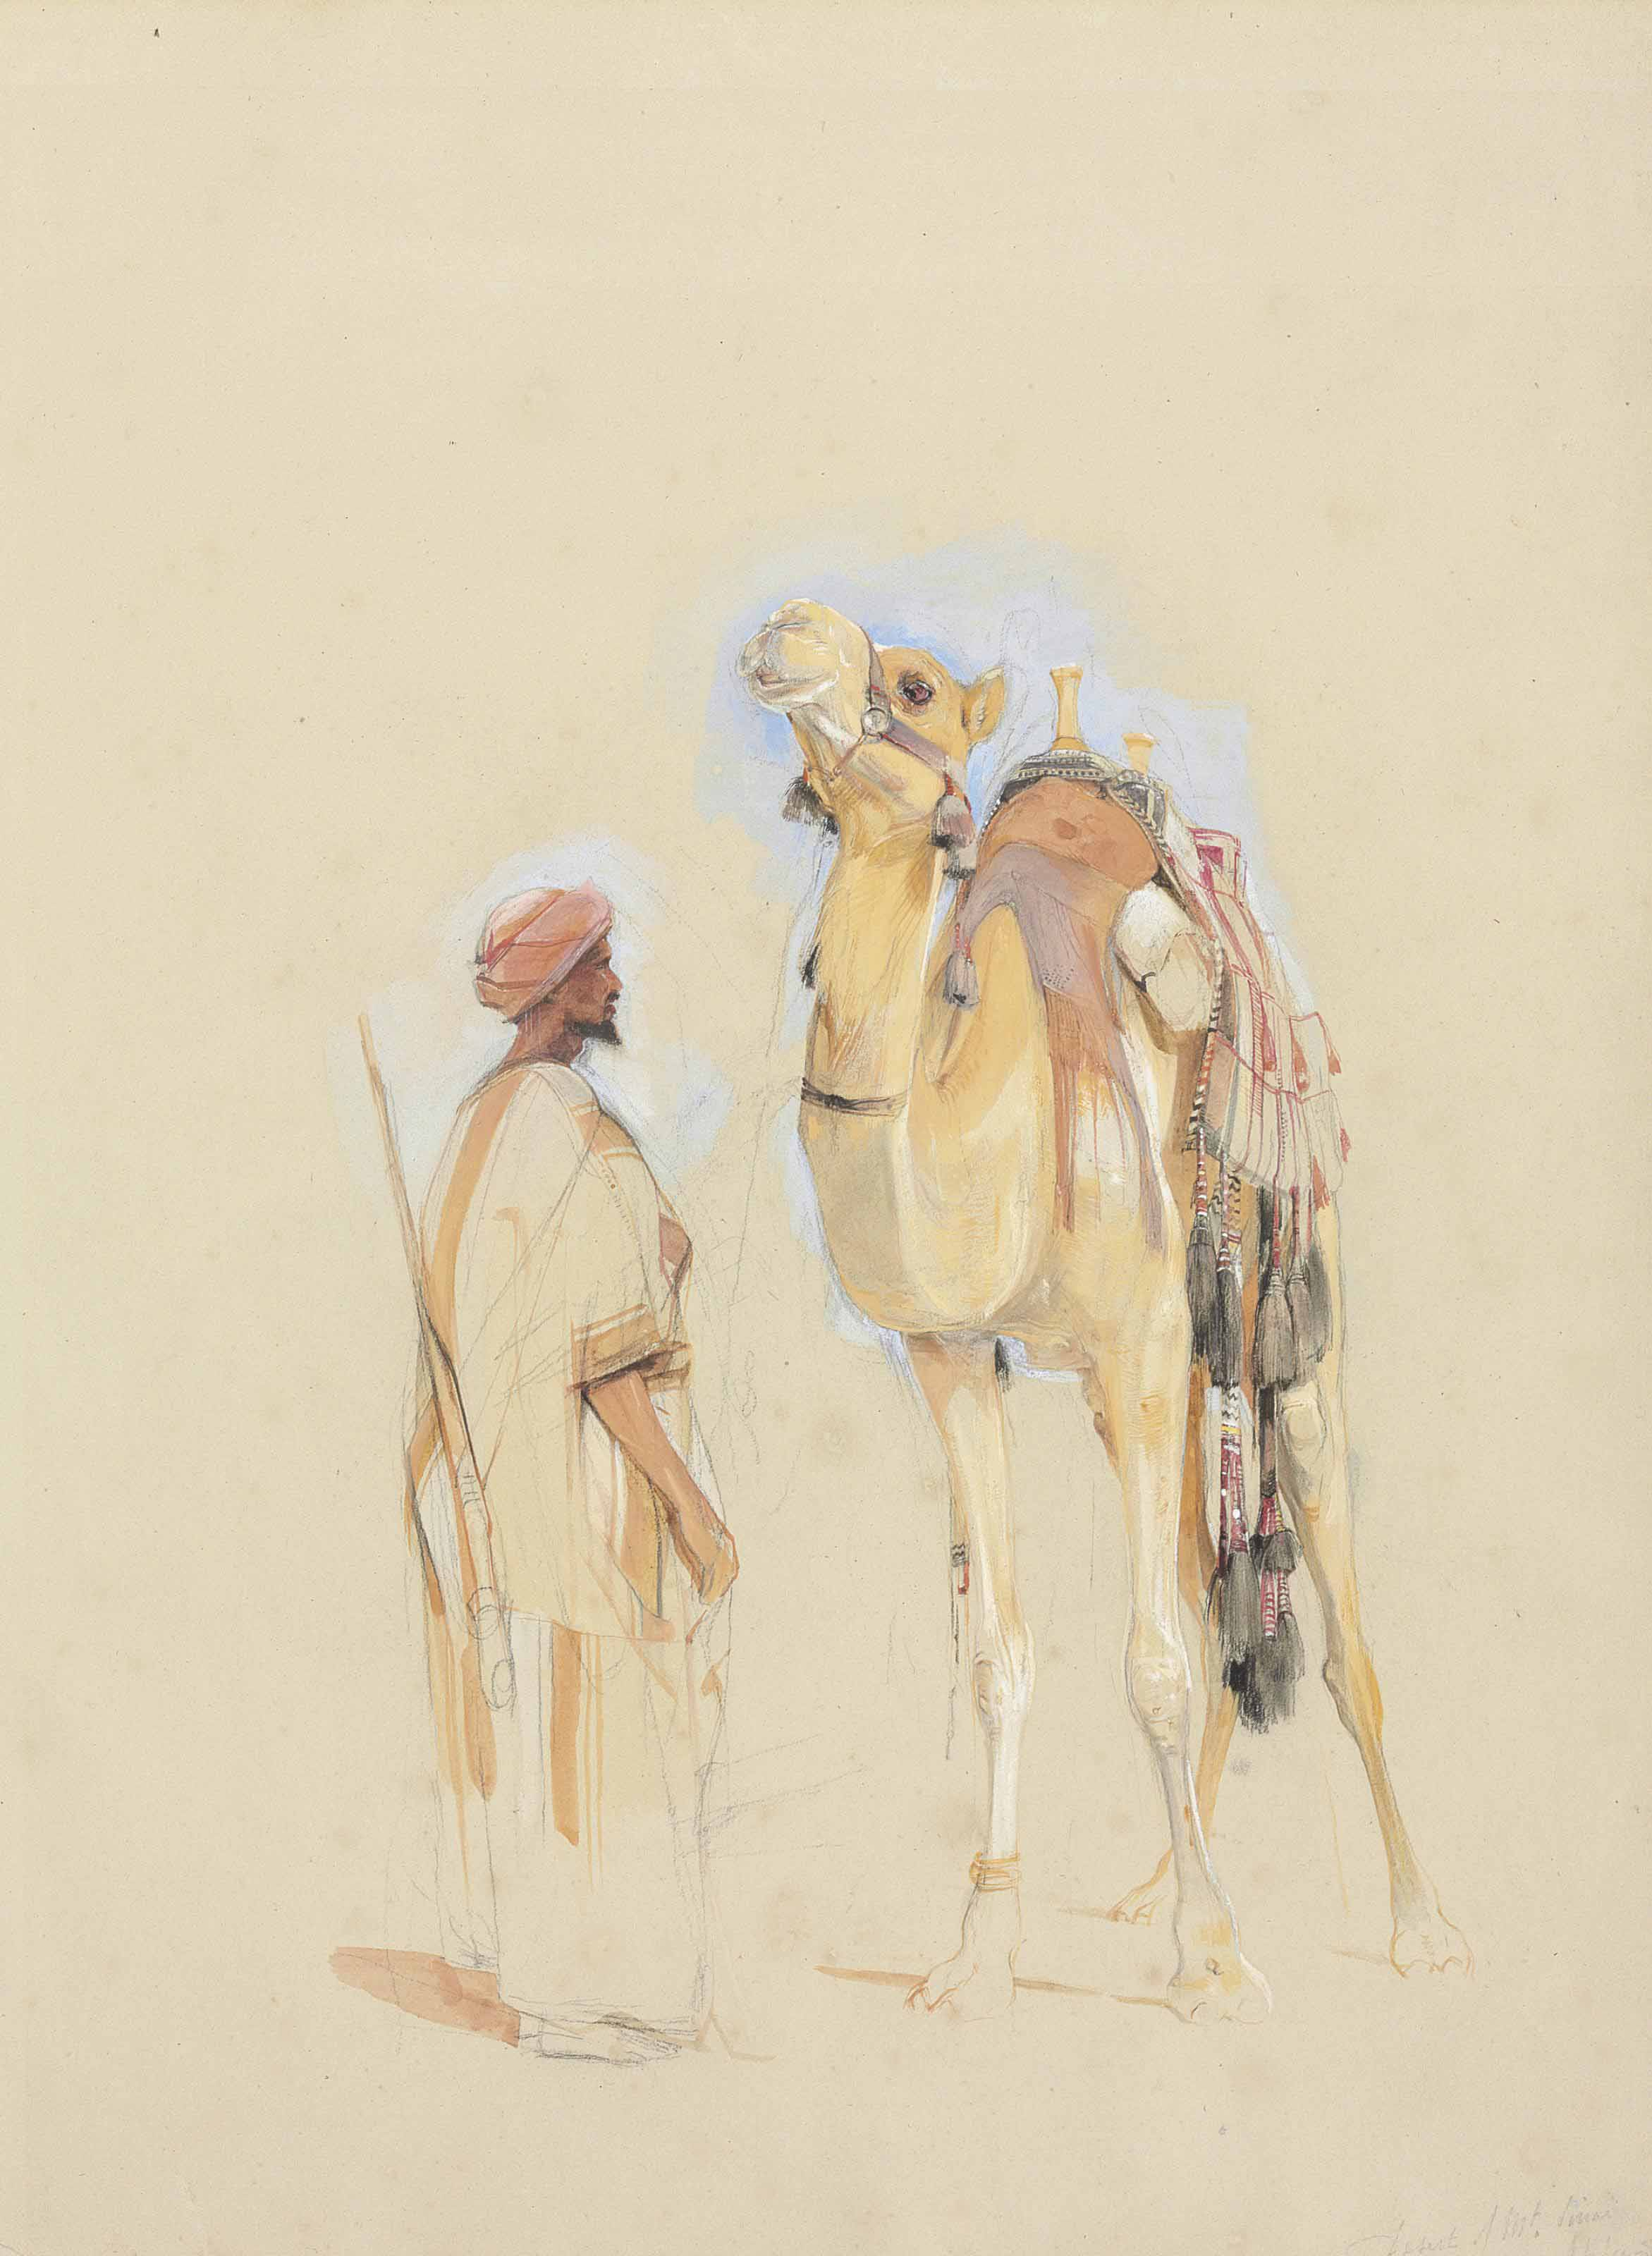 Bedouin Camel Driver and Camel, Sinai